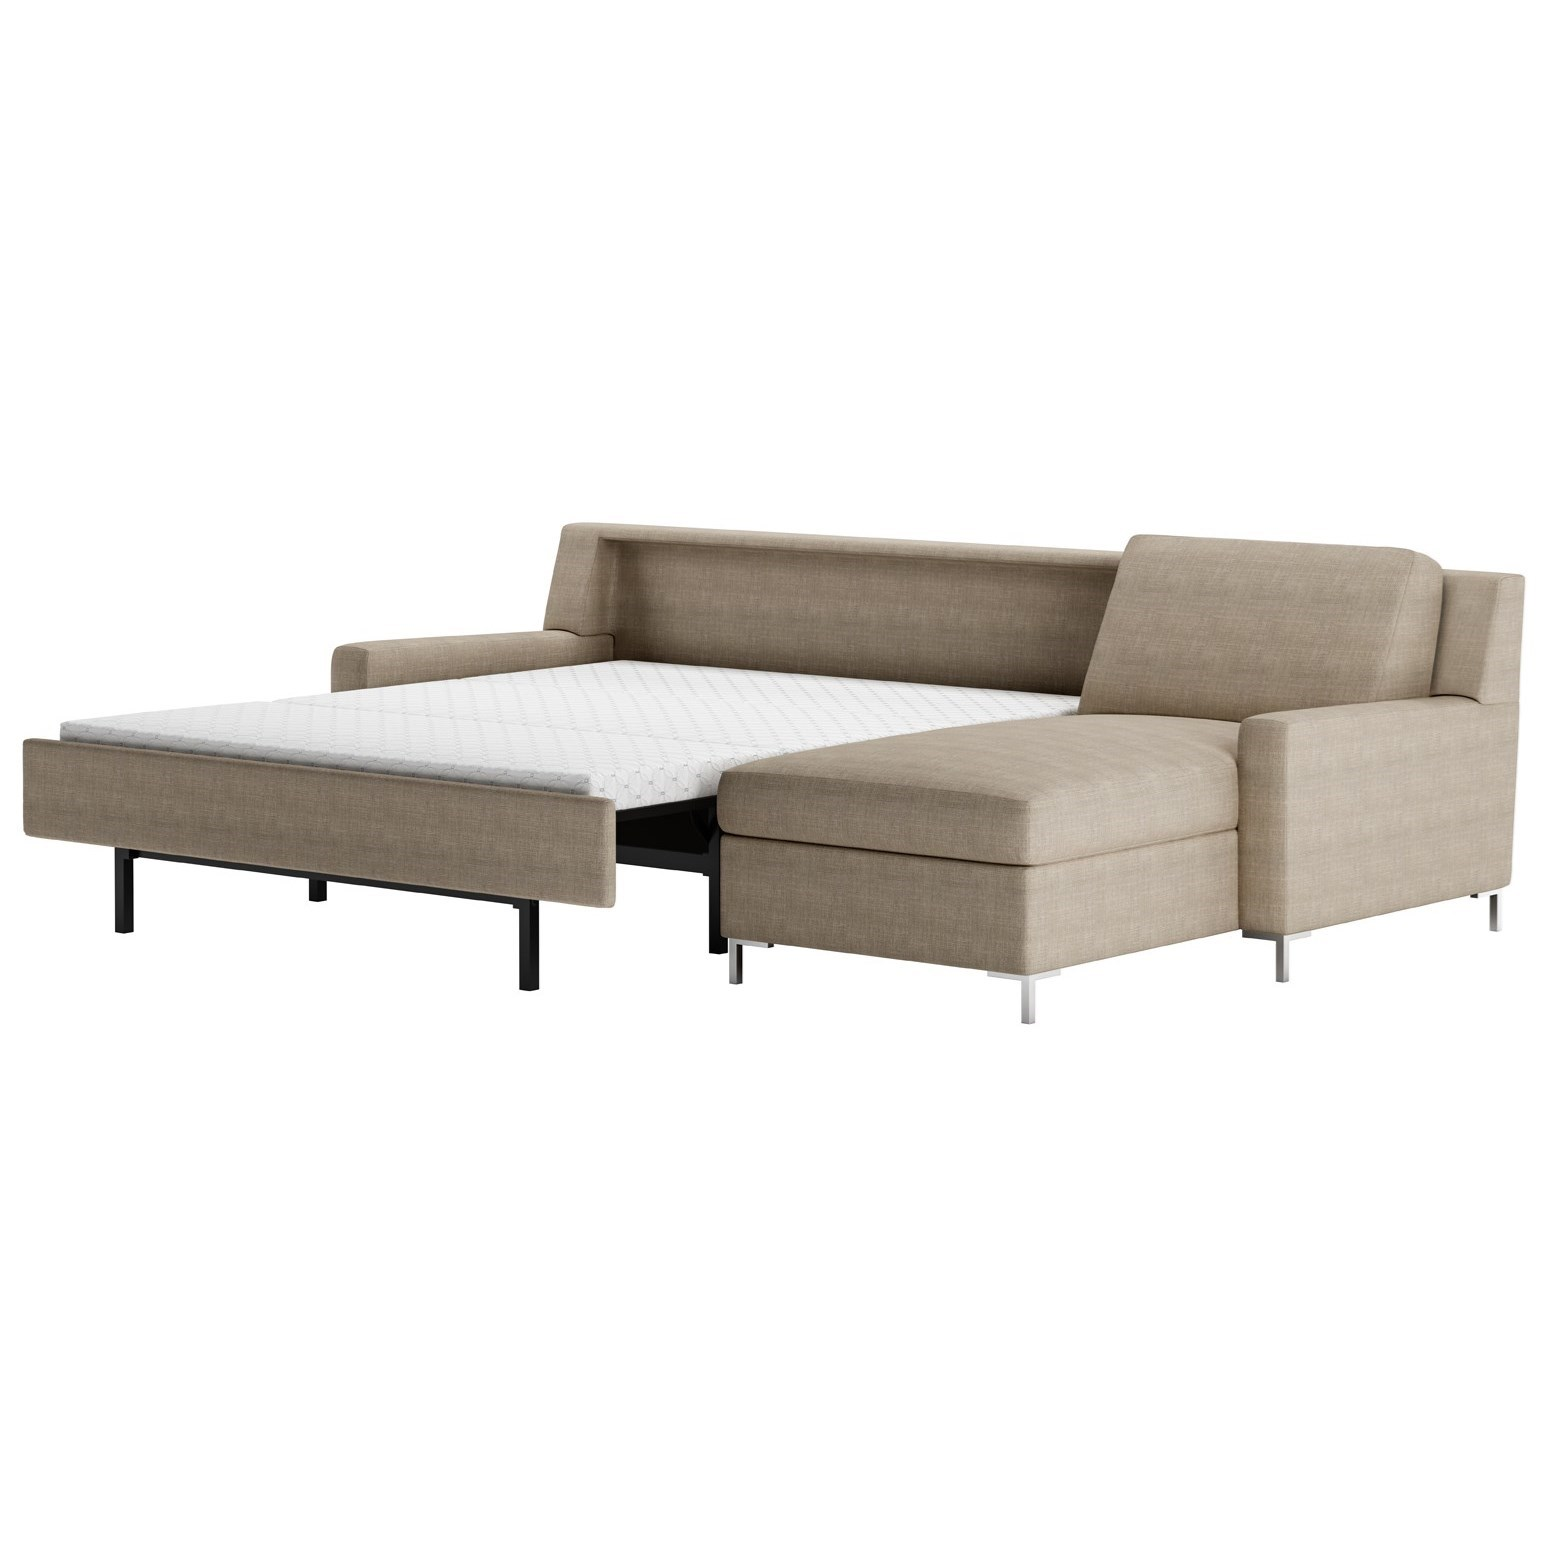 Bryson 2 Pc Sectional Sofa w/ Sleeper & LAS Chaise by American Leather at Baer's Furniture